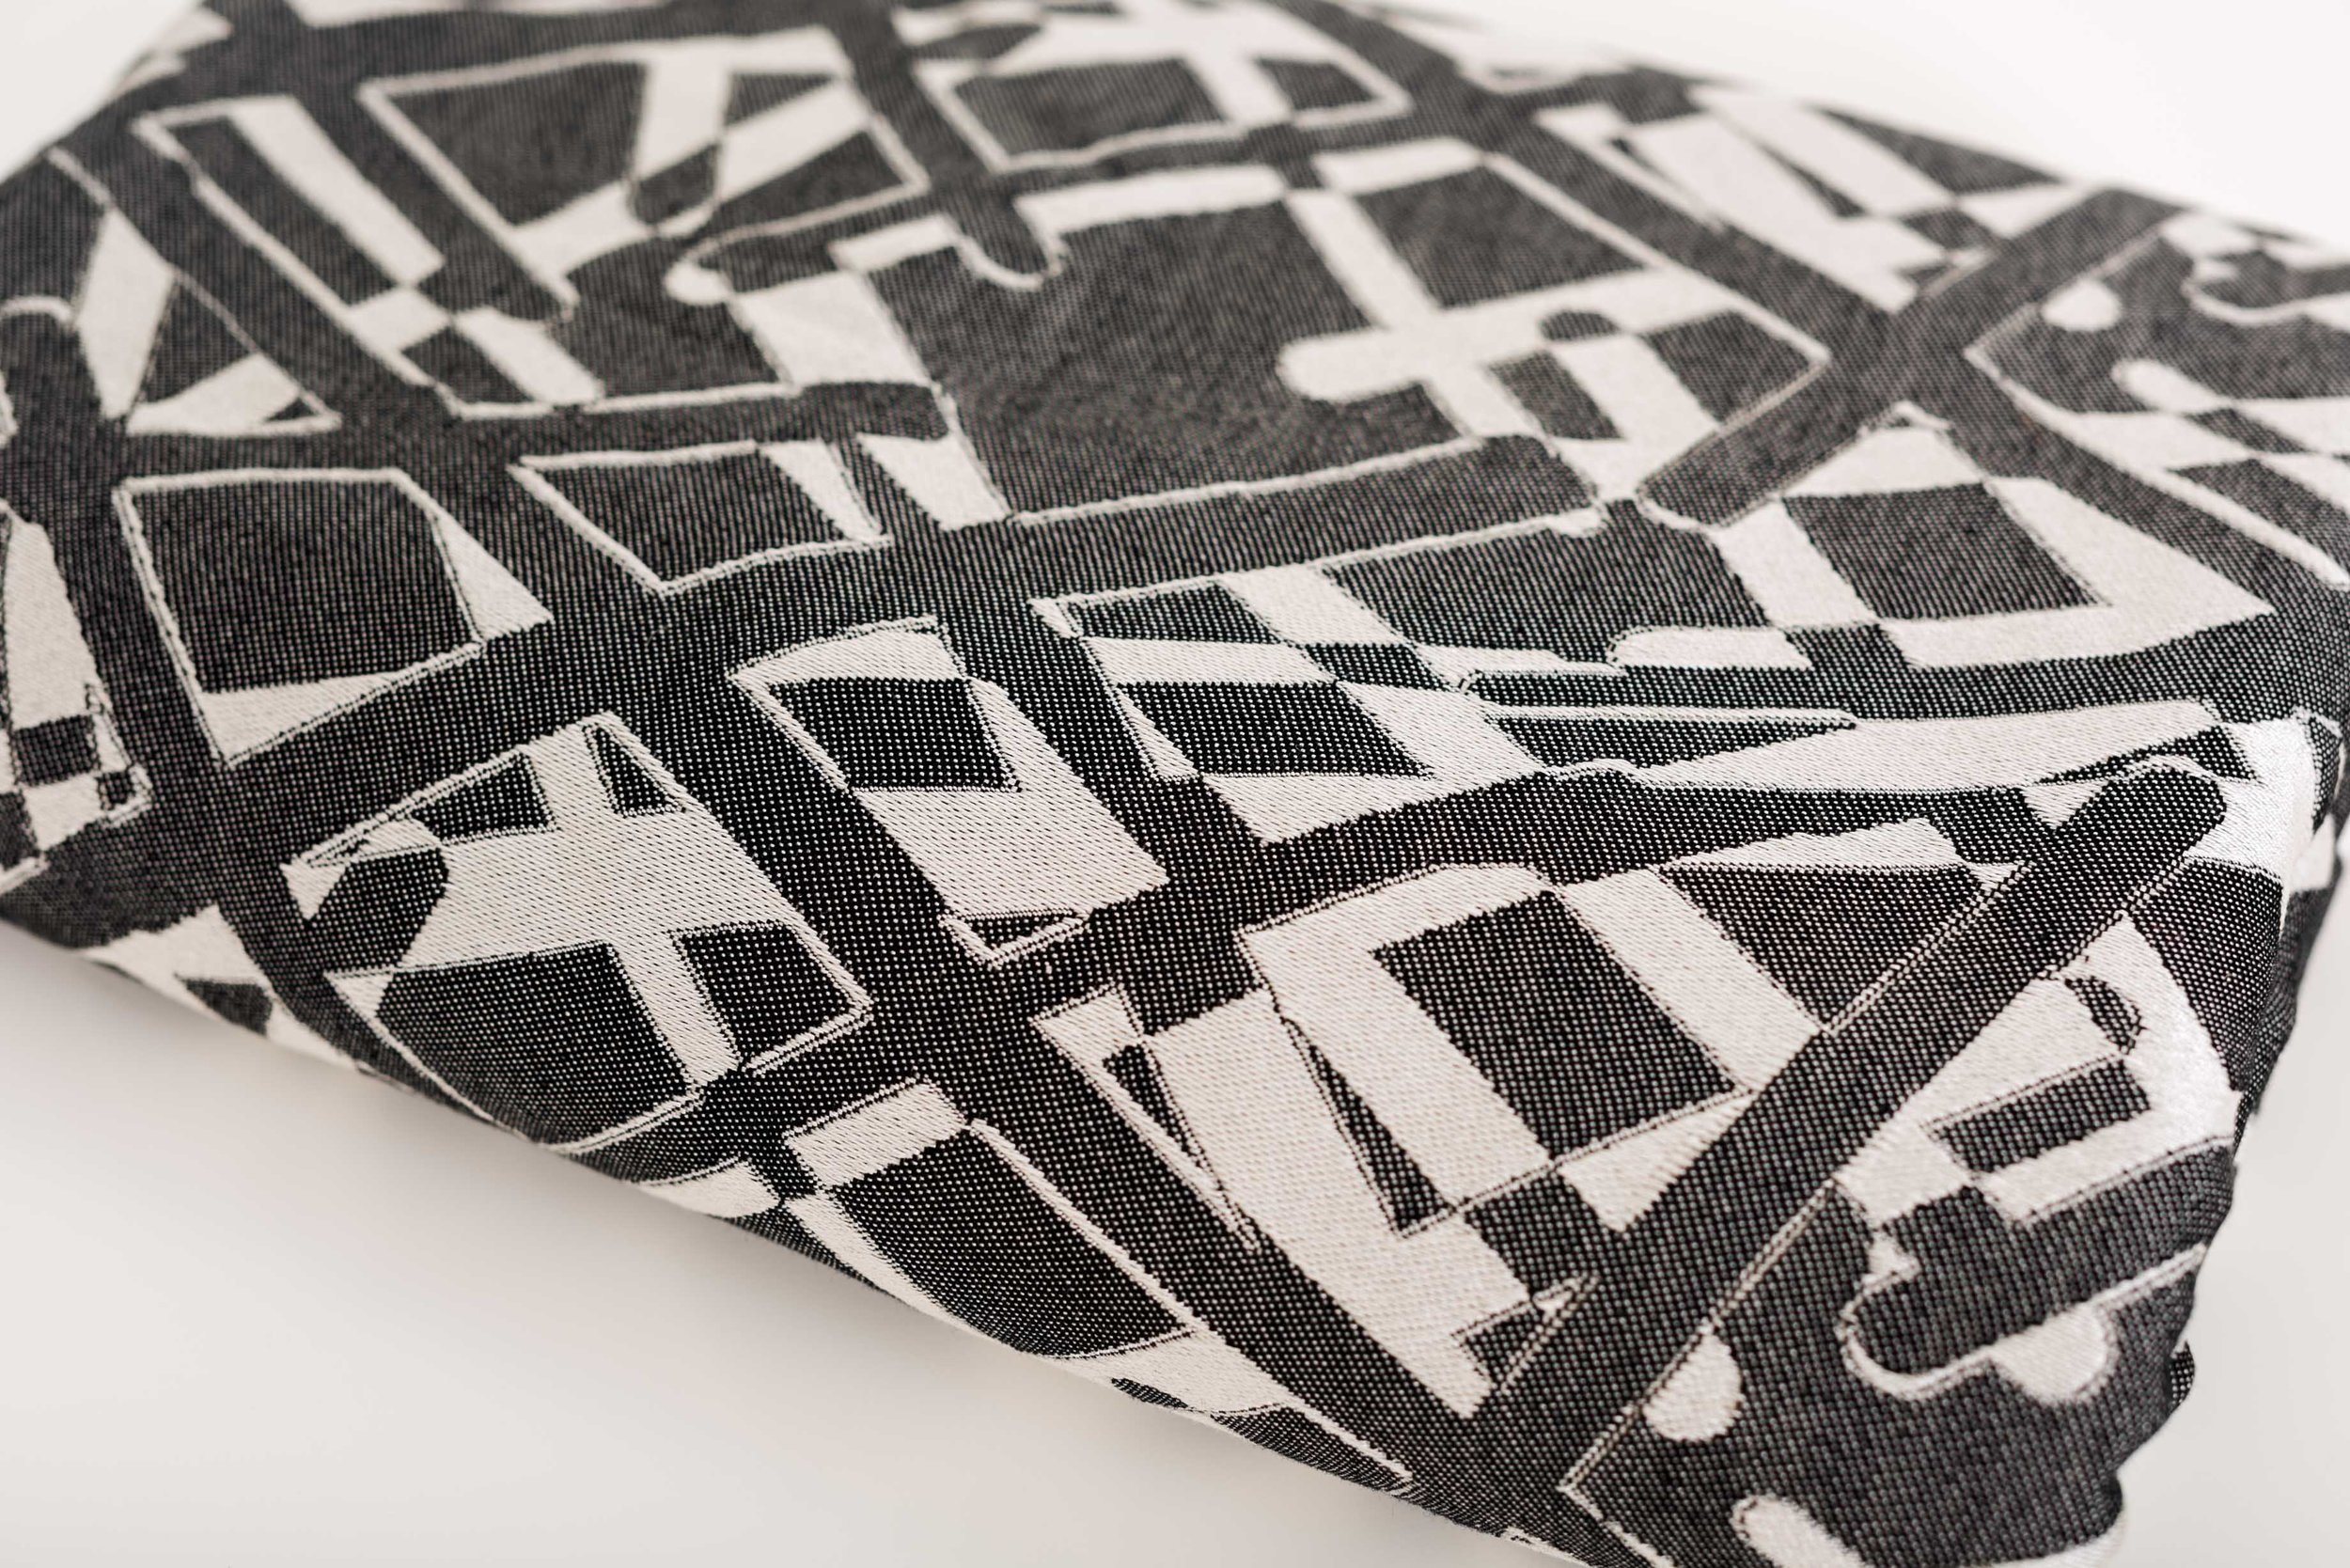 """Sticks Noir · 100% cotton  Sticks Noir, is our newest design and is debuting here in Chicago. This is the Goldilocks of wraps. Hugging the middle ground on all wrap qualities, you will find that it falls in the """"just right"""" category. This wrap is new wrapper friendly, yet advanced wrappers will appreciate its ease of use. It is great for squishes and also for toddlers. You just can't go wrong with any size, as the wrapping qualities are friendly to wrappers of all skill levels."""